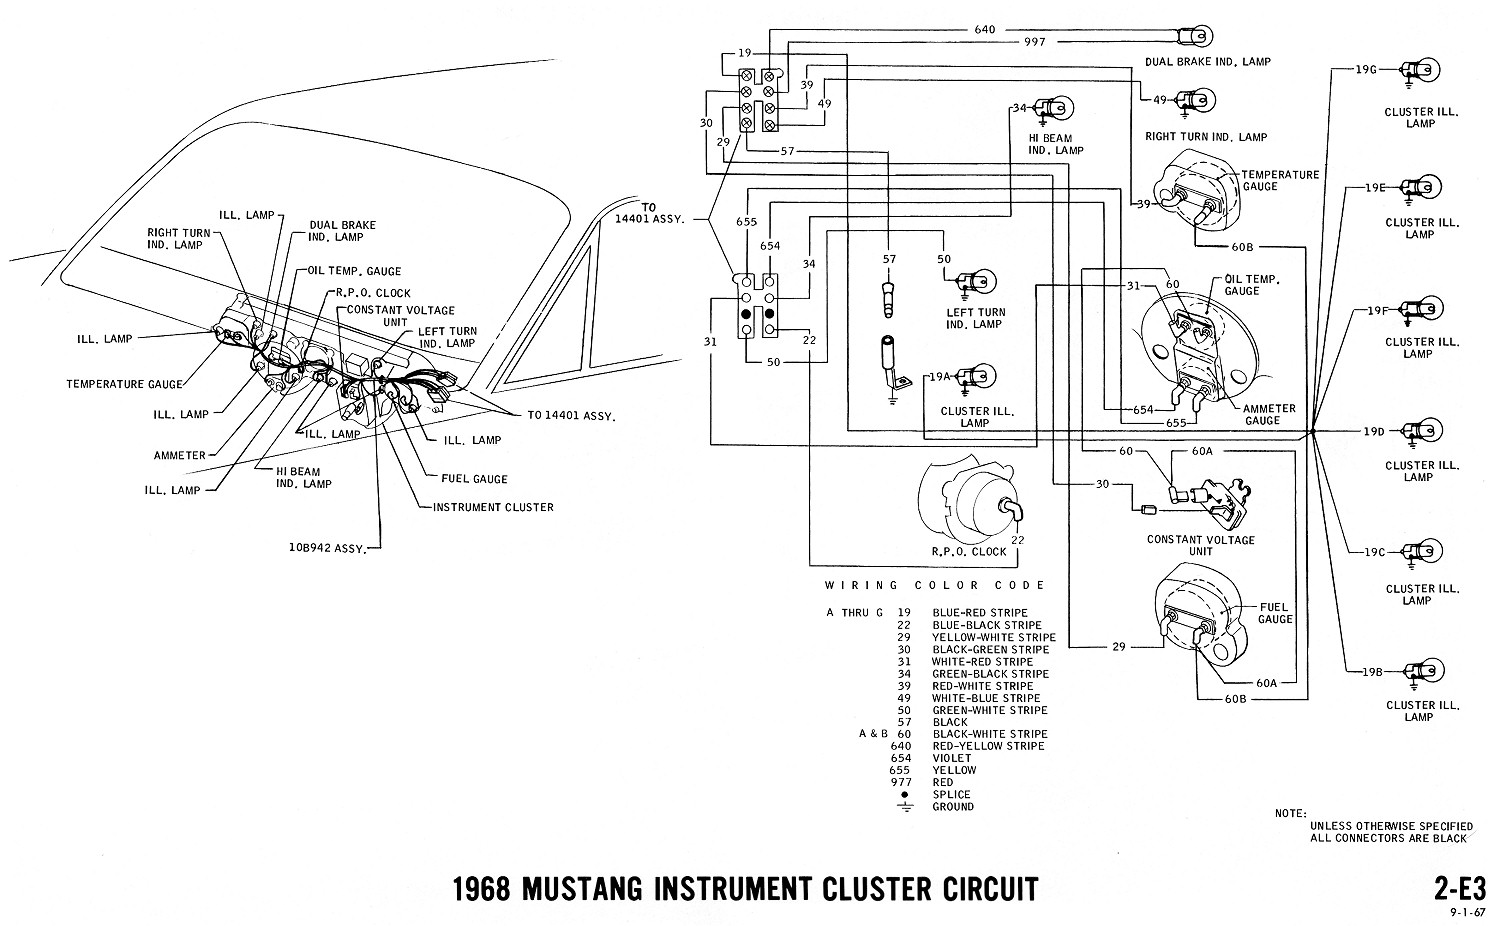 1968 Mustang Wiring Diagrams And Vacuum Schematics Average Joe How To Wire Circuits From Diagram Instruments